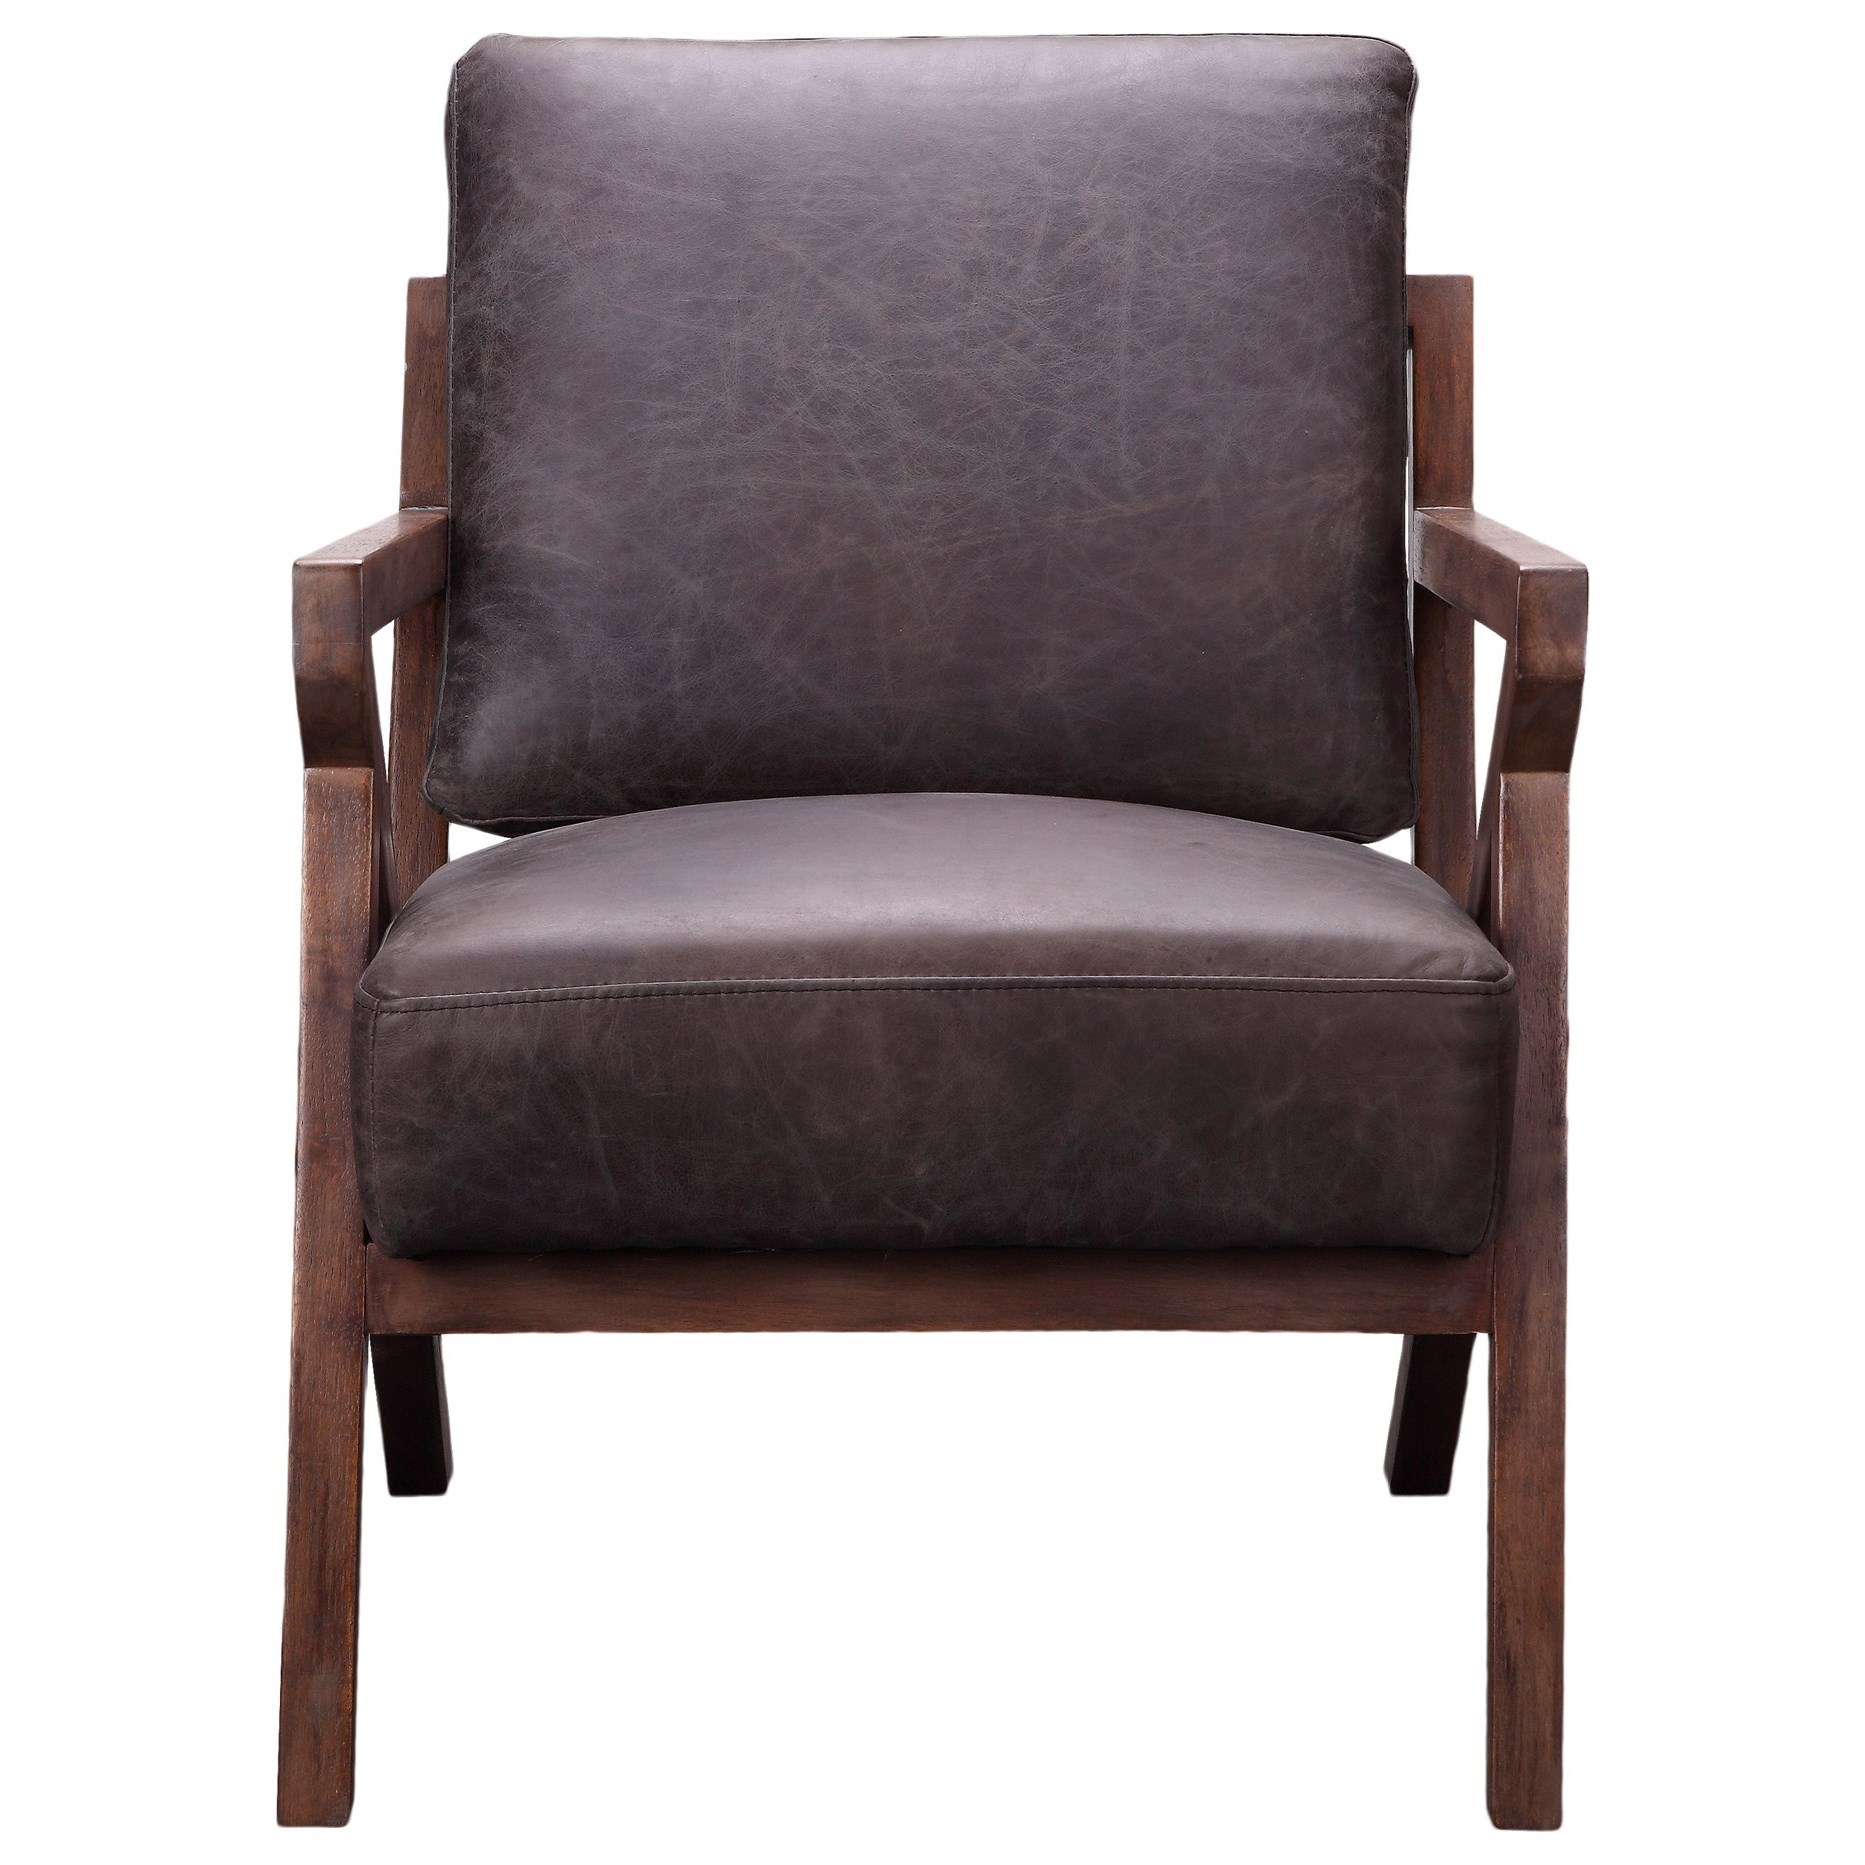 Drexel Arm Chair by Moe's Home Collection at Wilson's Furniture